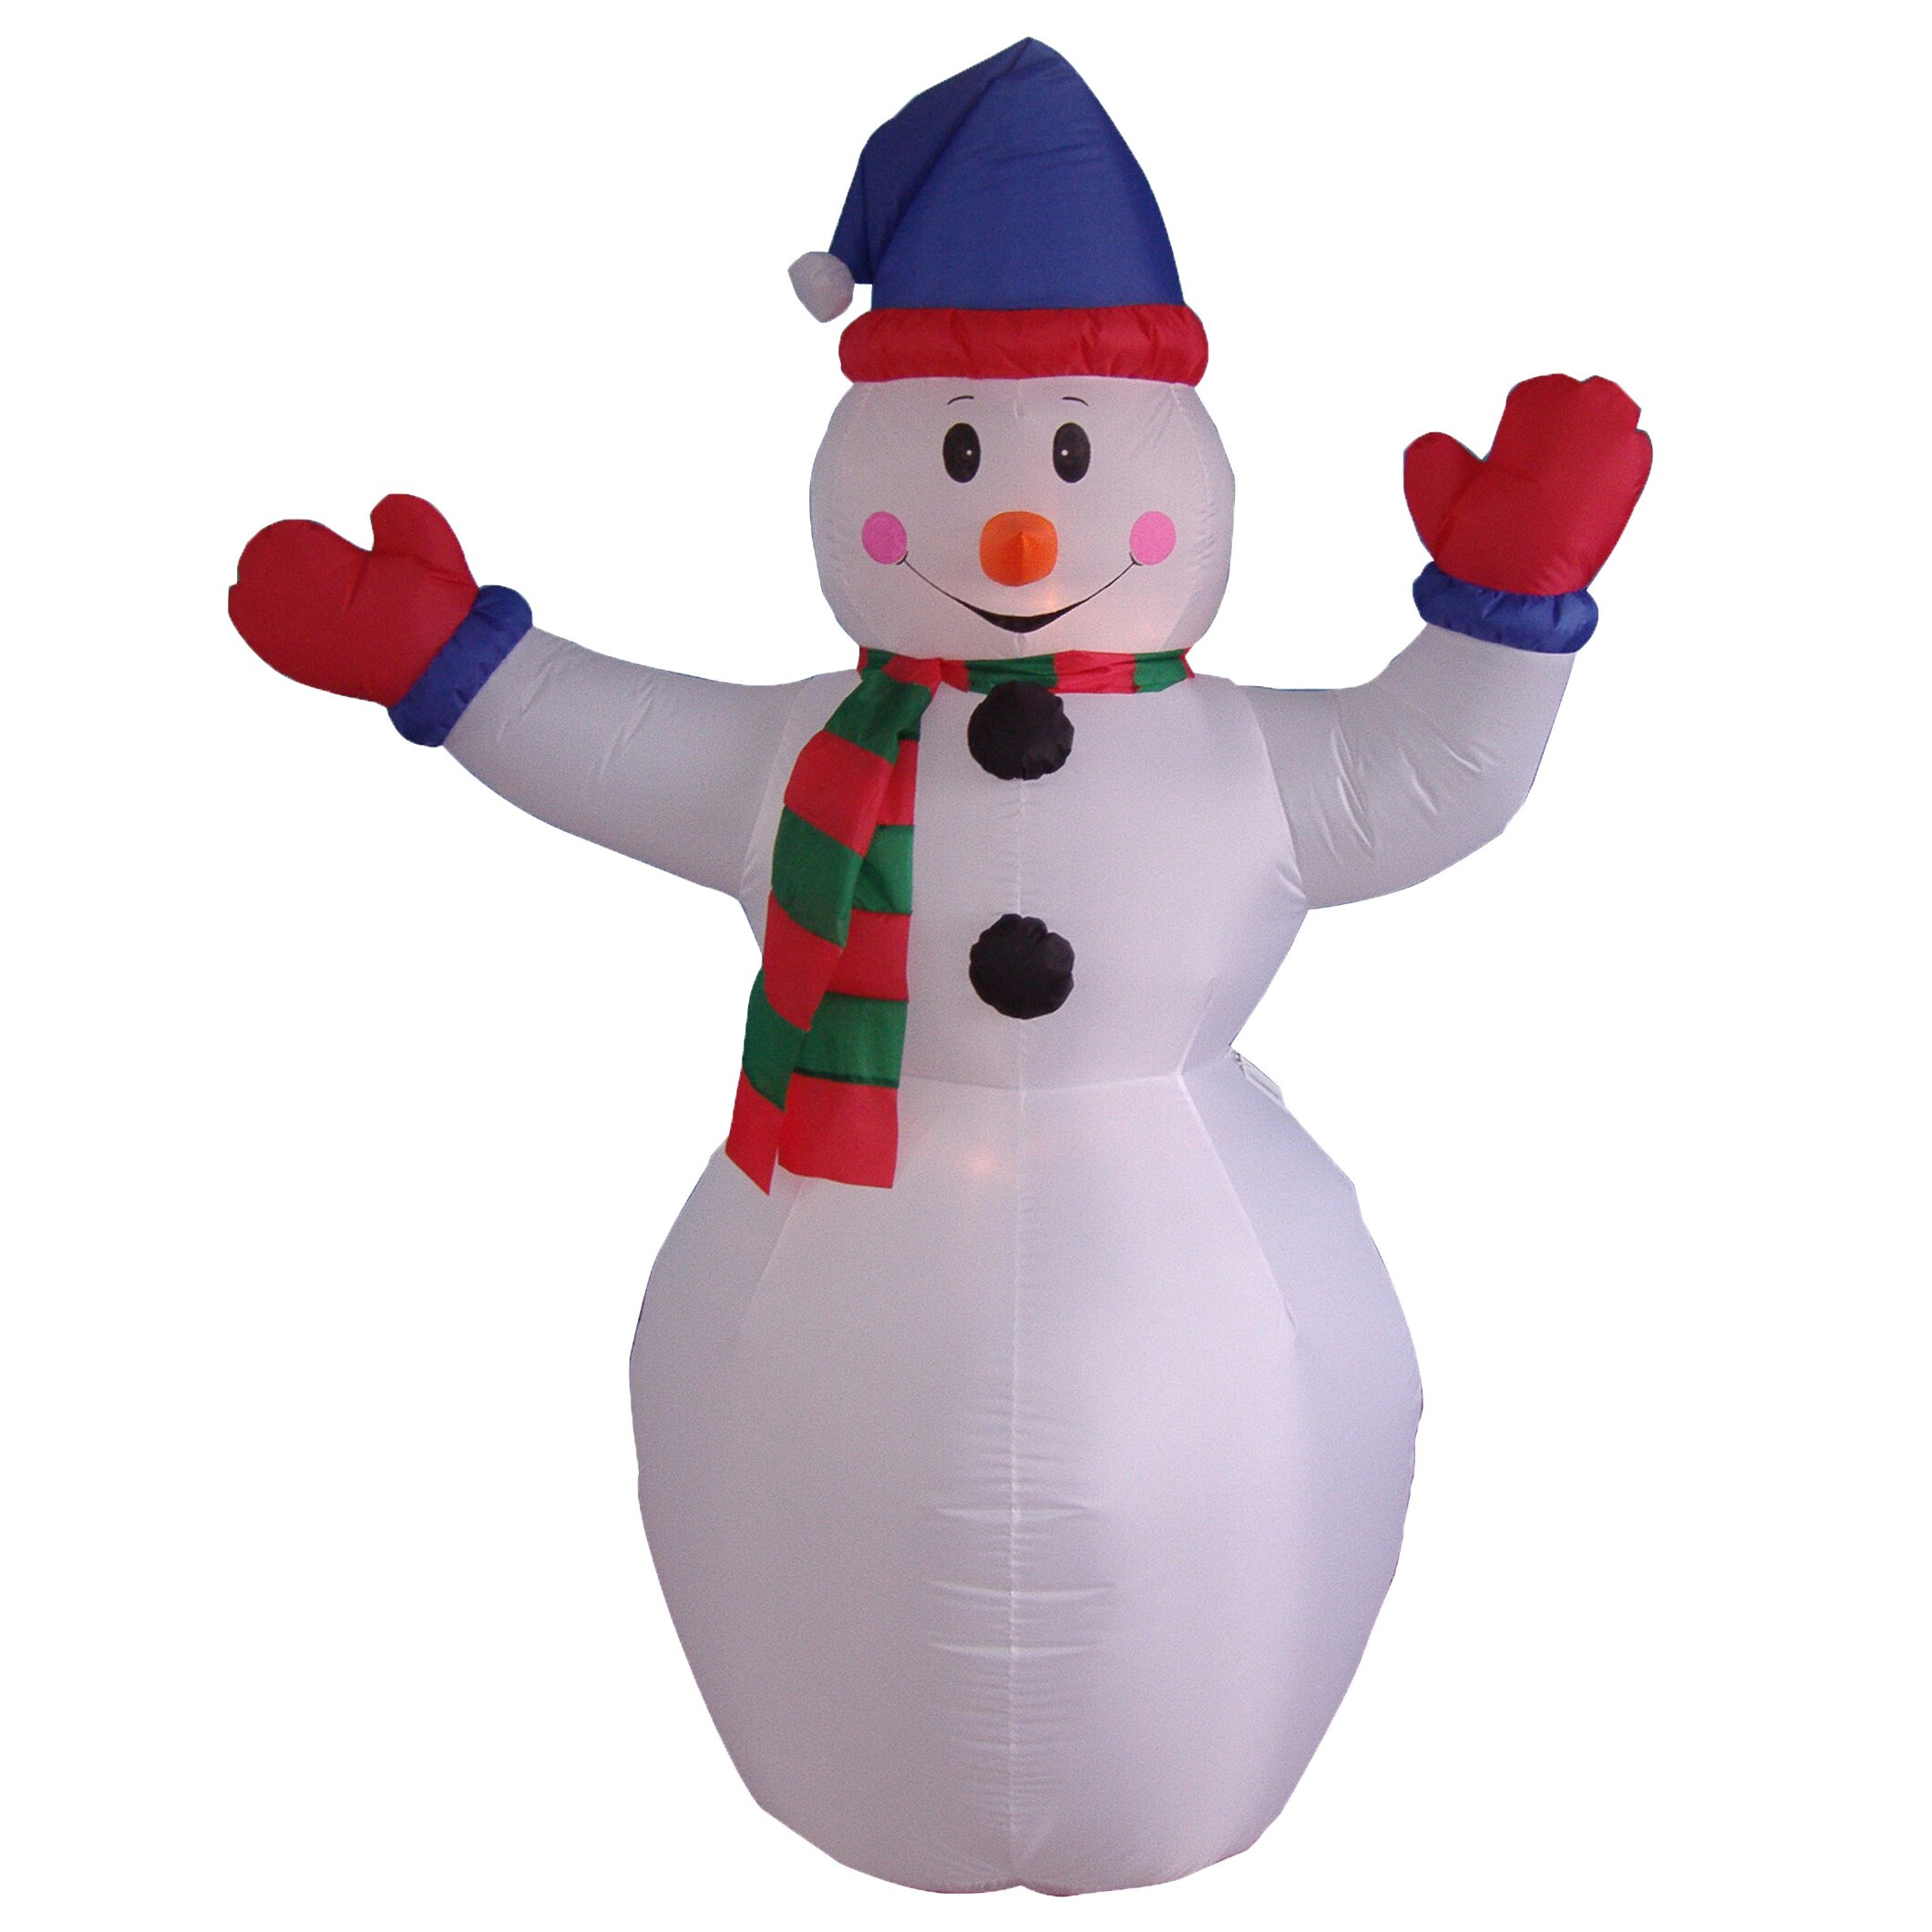 Christmas Inflatable Snowman Decoration